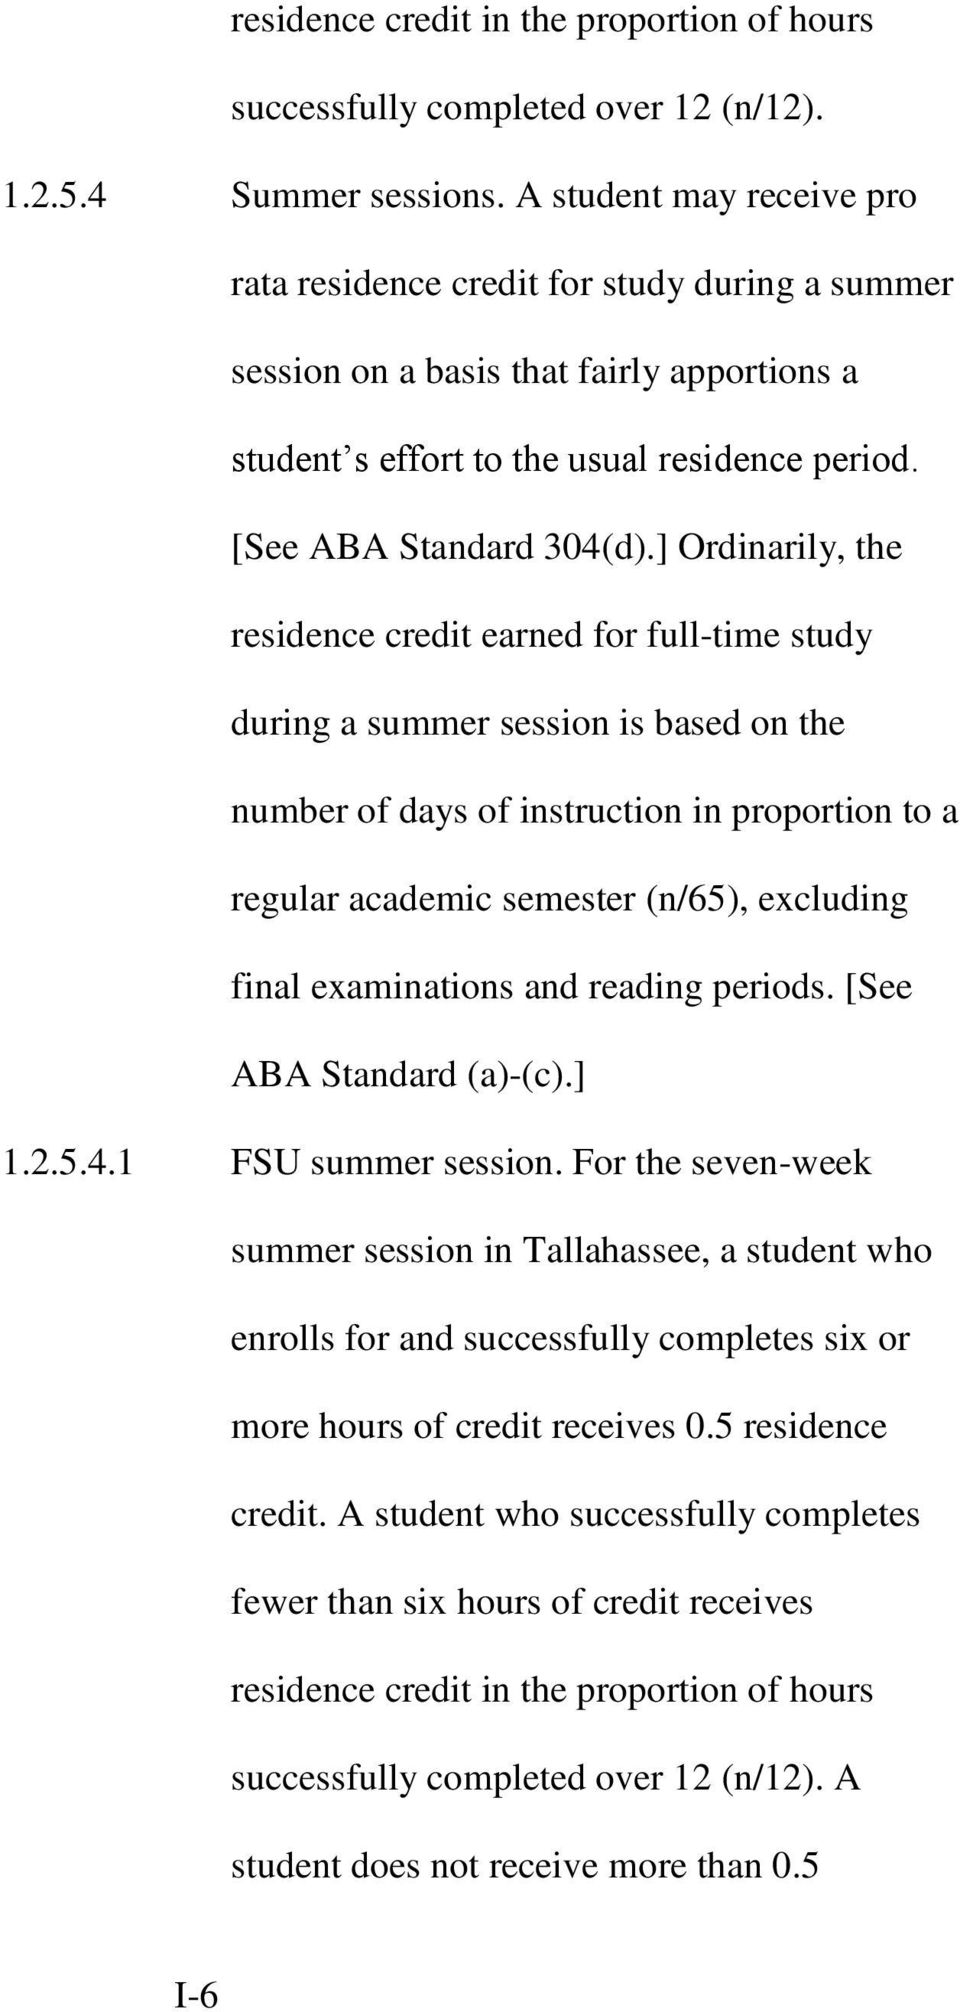 ] Ordinarily, the residence credit earned for full-time study during a summer session is based on the number of days of instruction in proportion to a regular academic semester (n/65), excluding